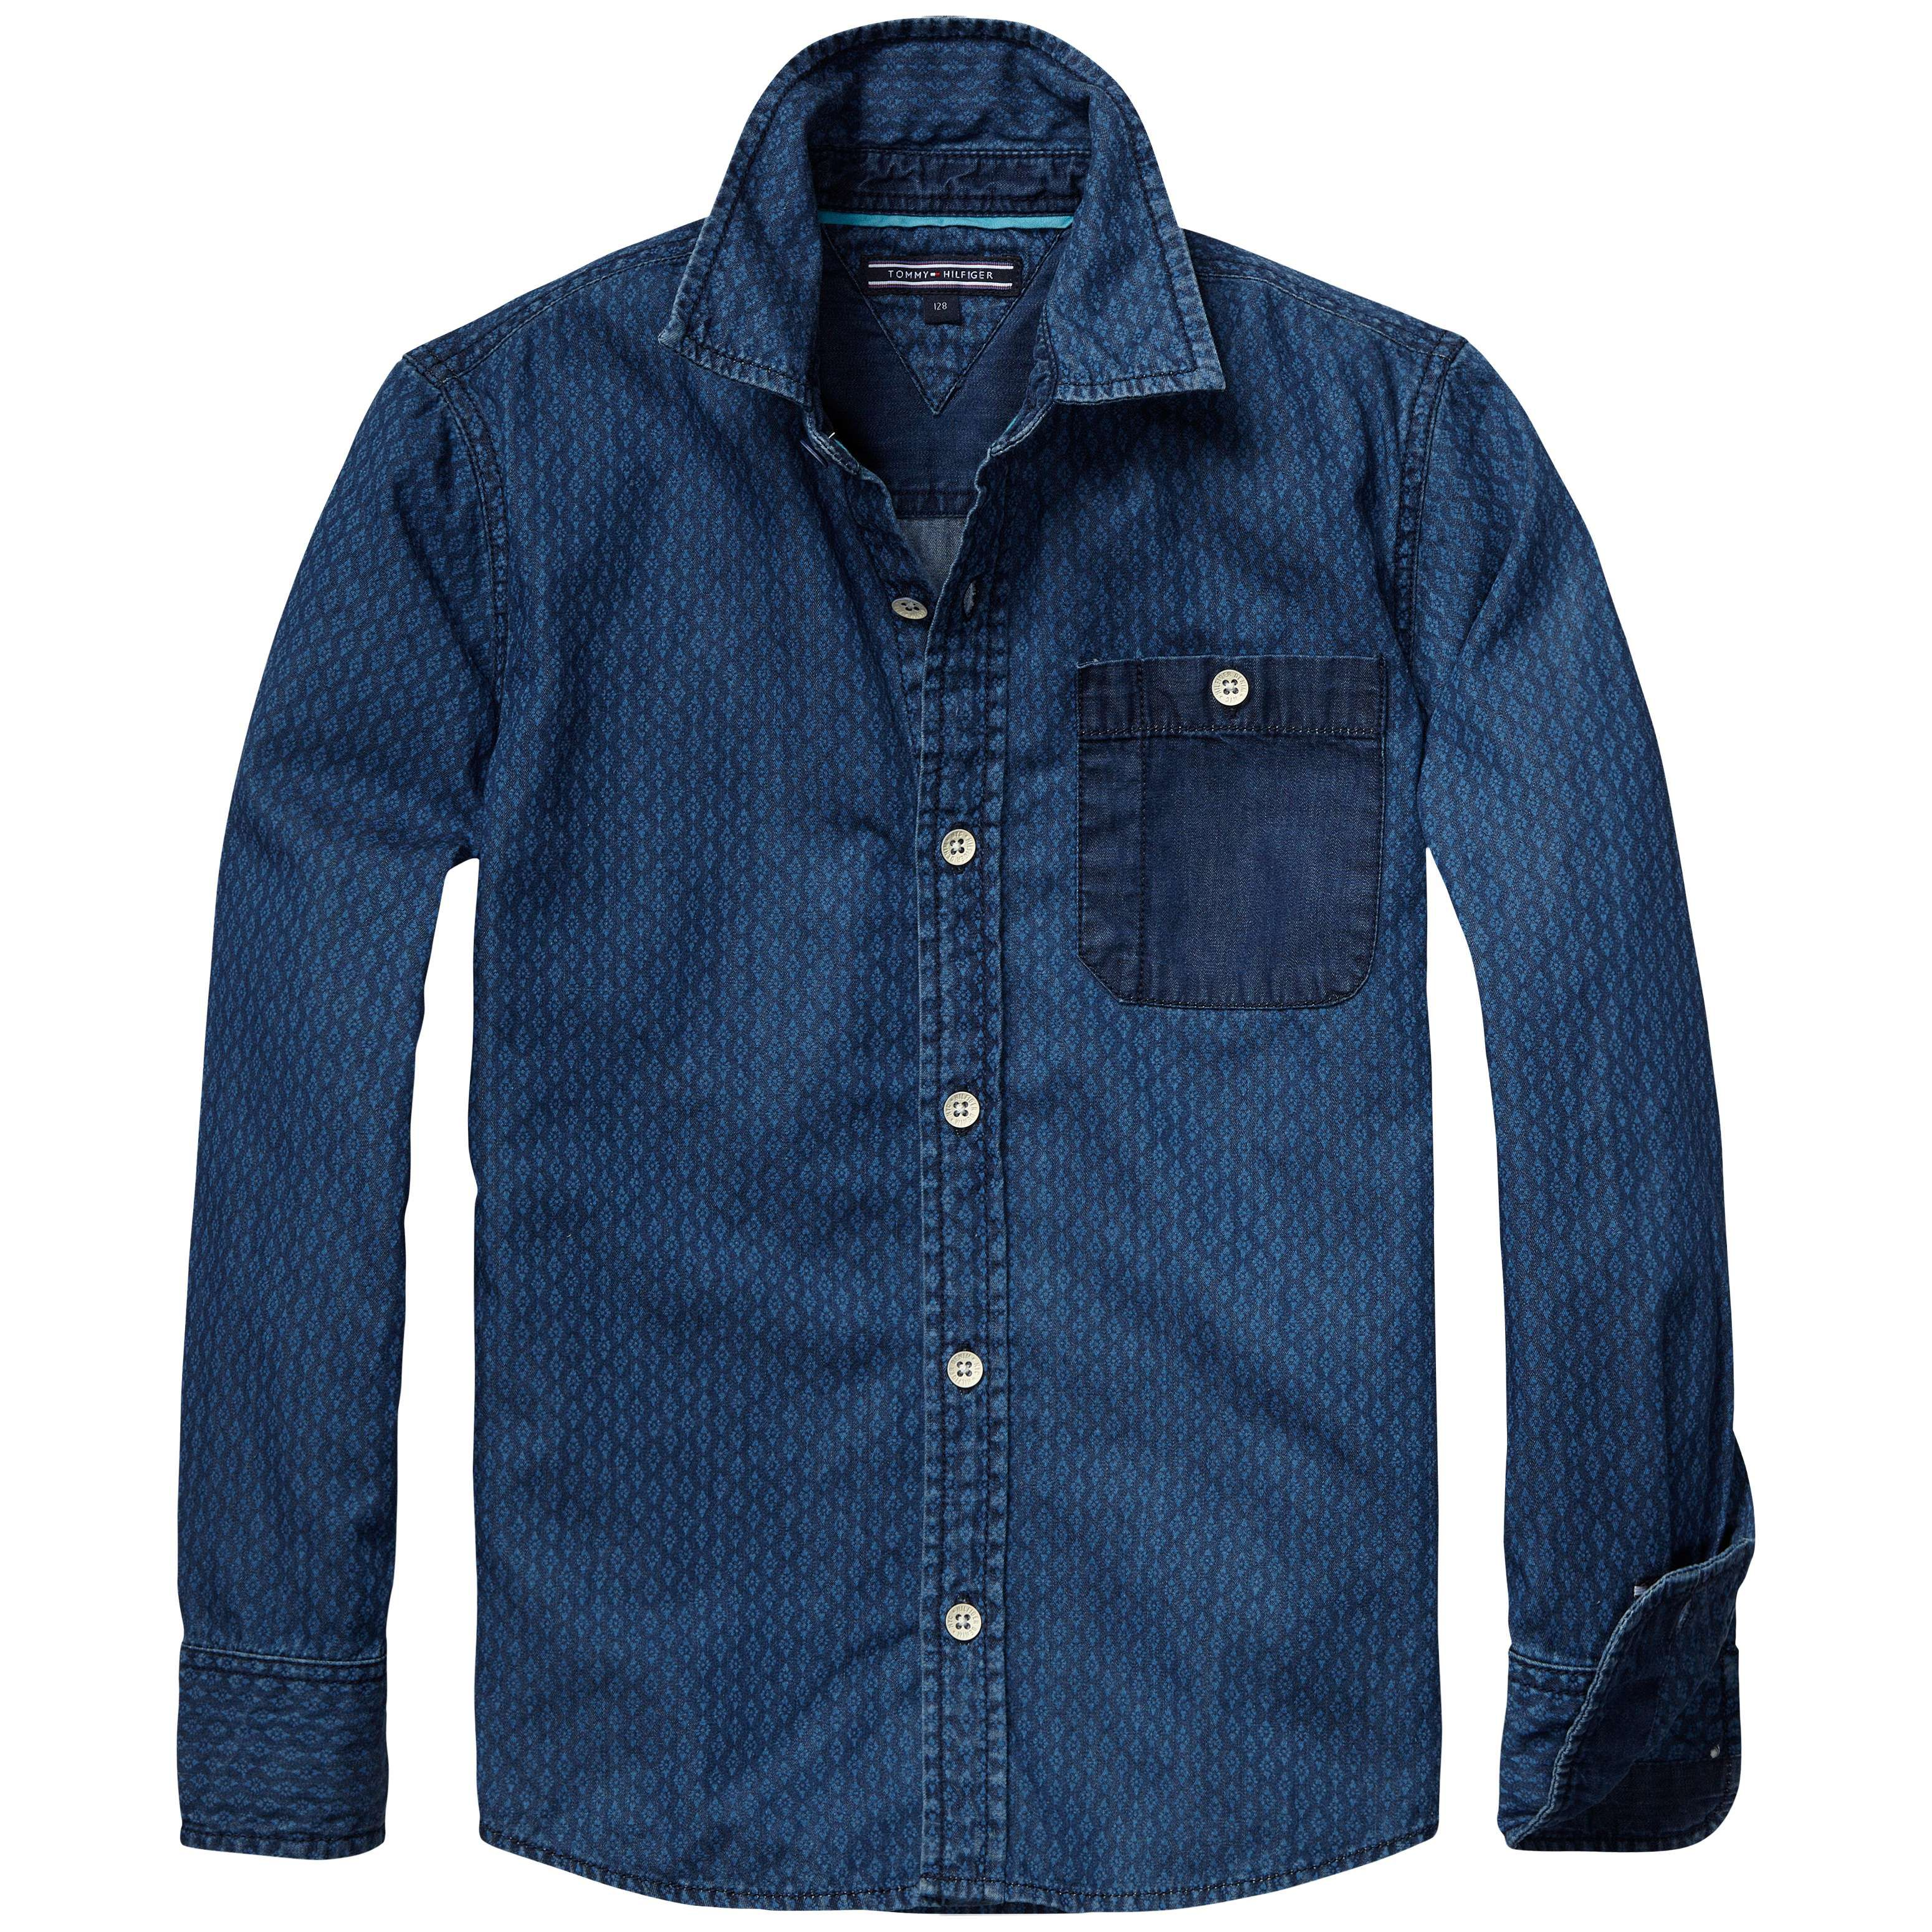 Boys textured chambray shirt